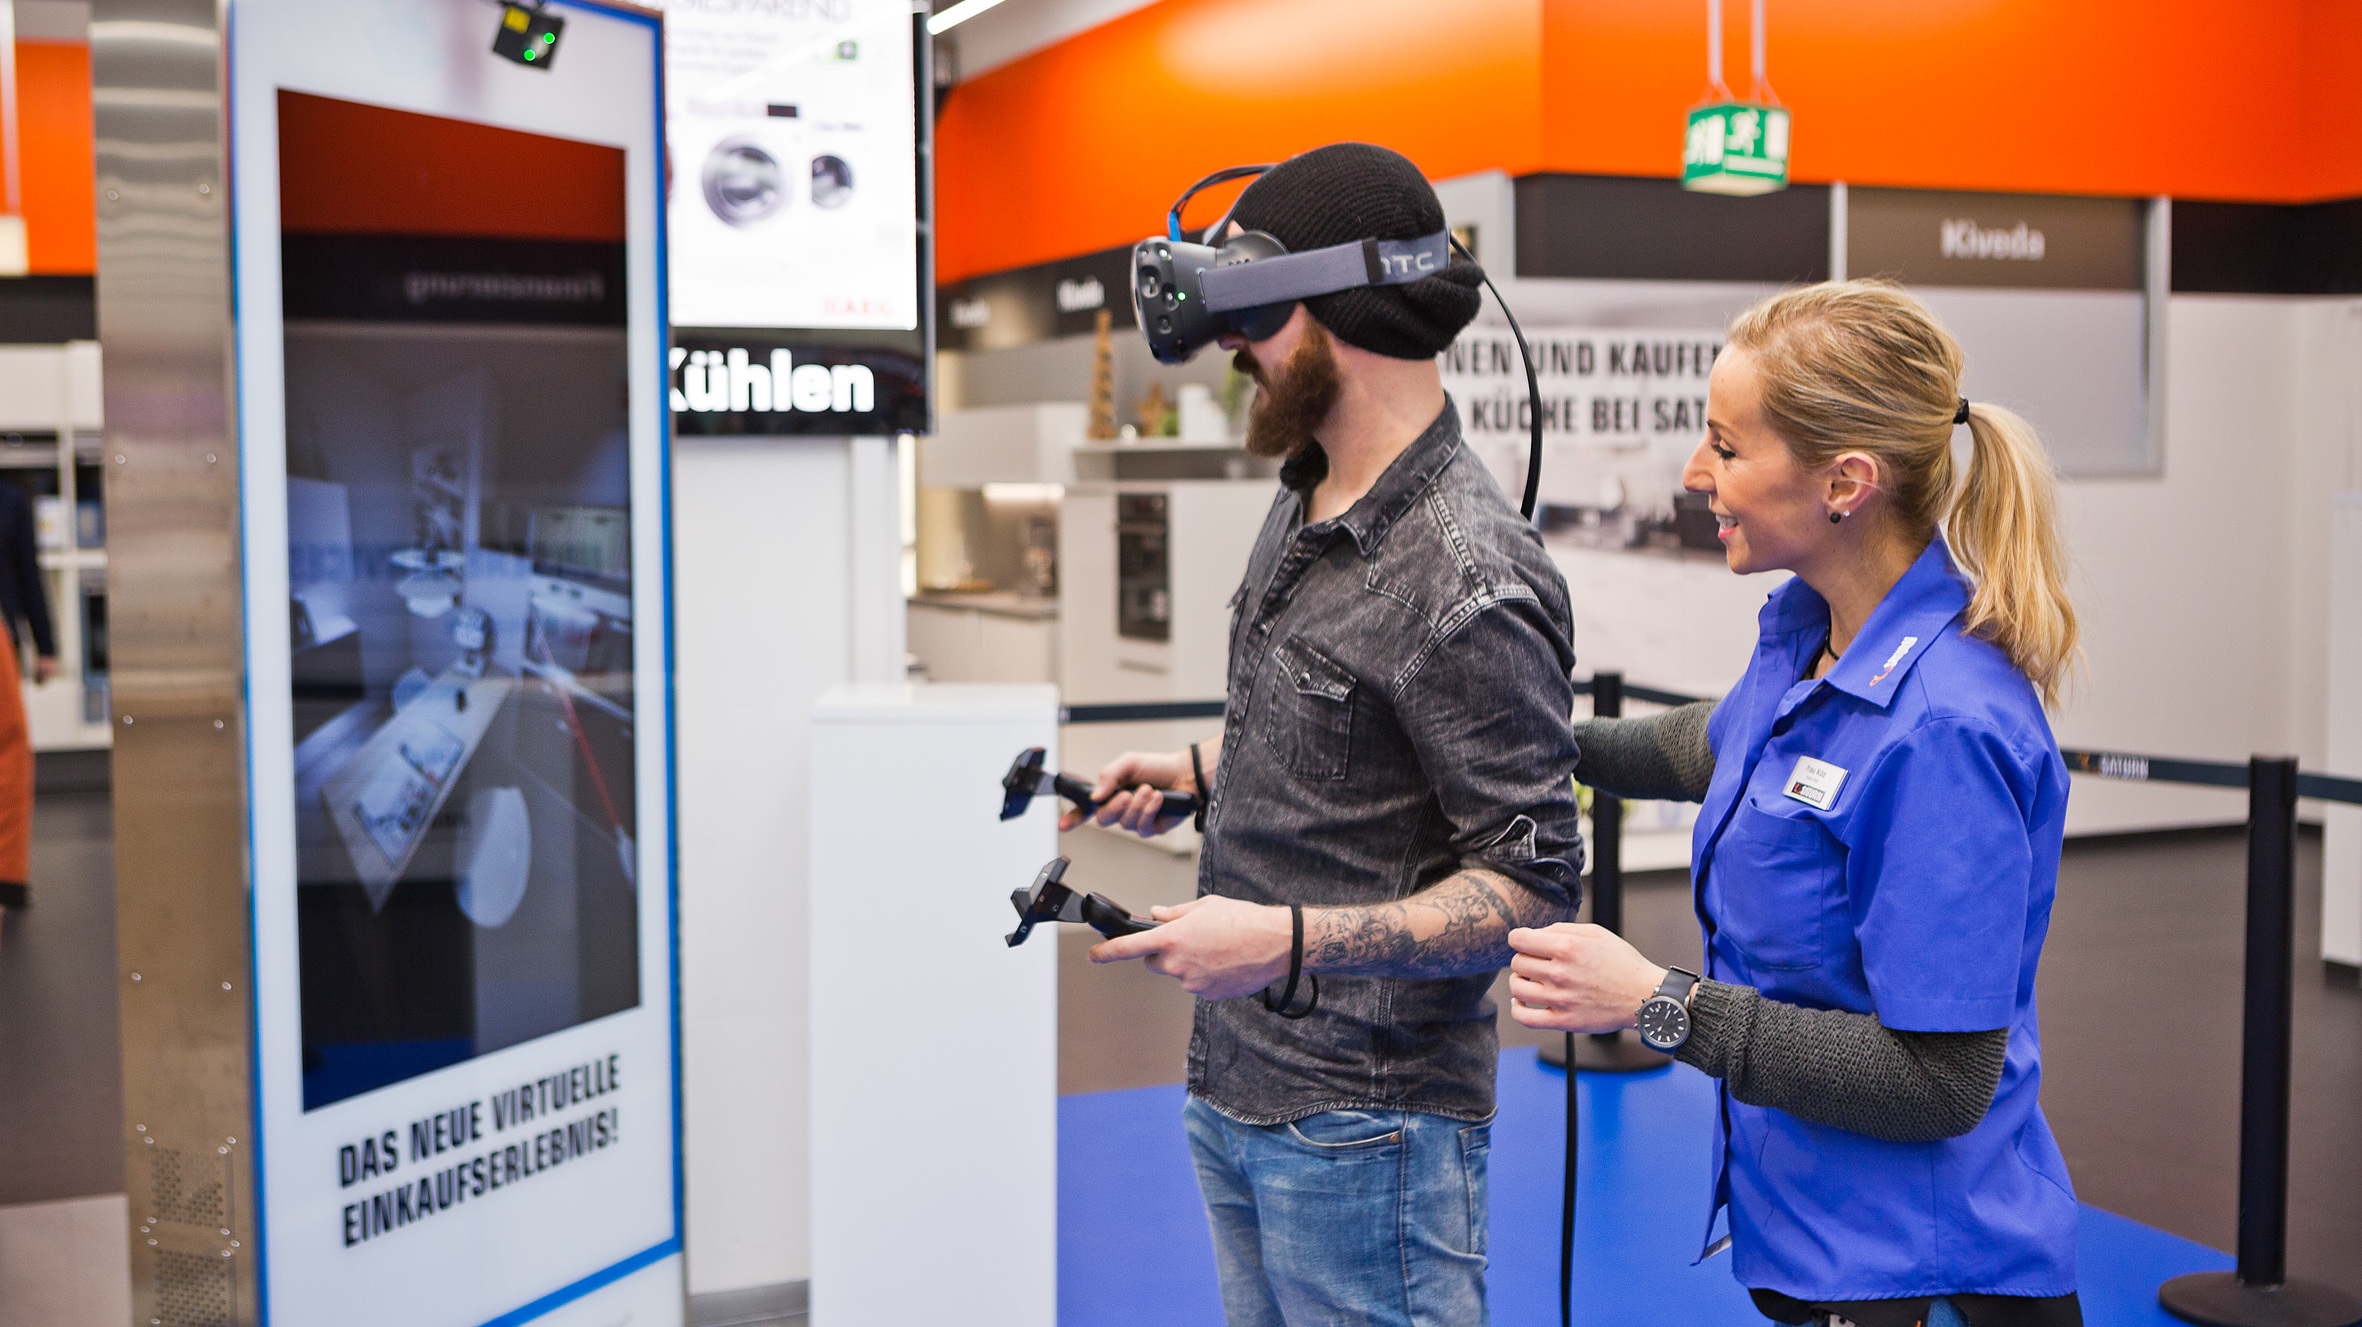 Media Saturn Testet Virtual Reality Bei Der K 252 Chenplanung